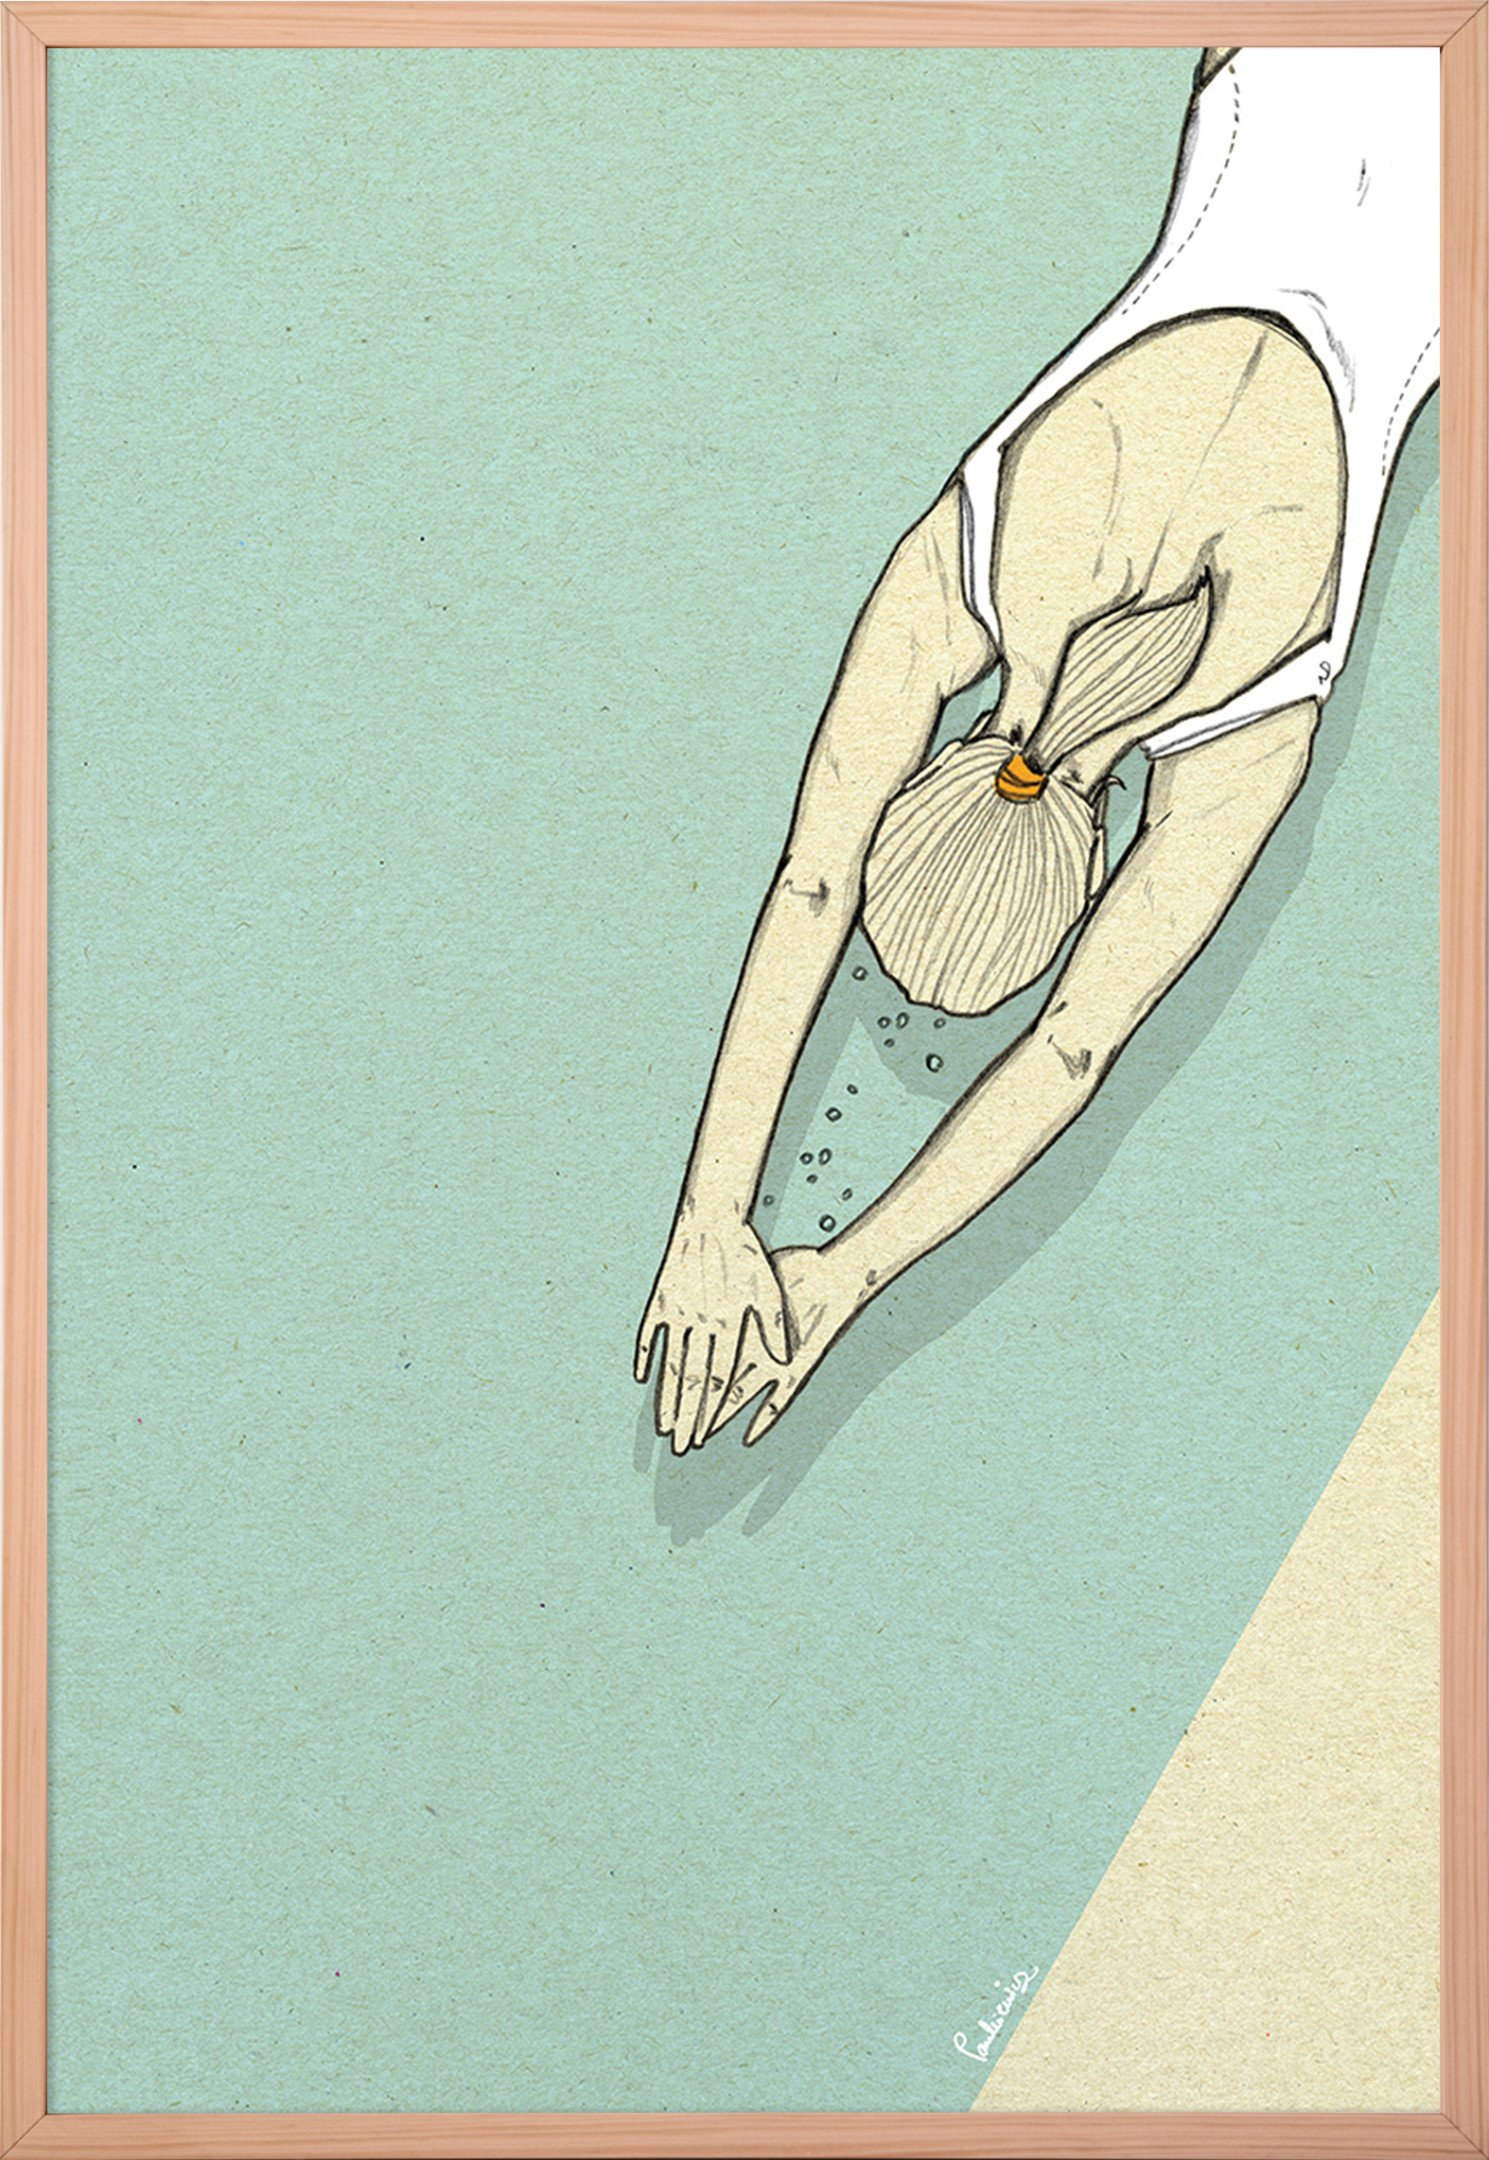 Poster Swimmer II 50x70 by M. Pankiewicz for Wall-being, Poland